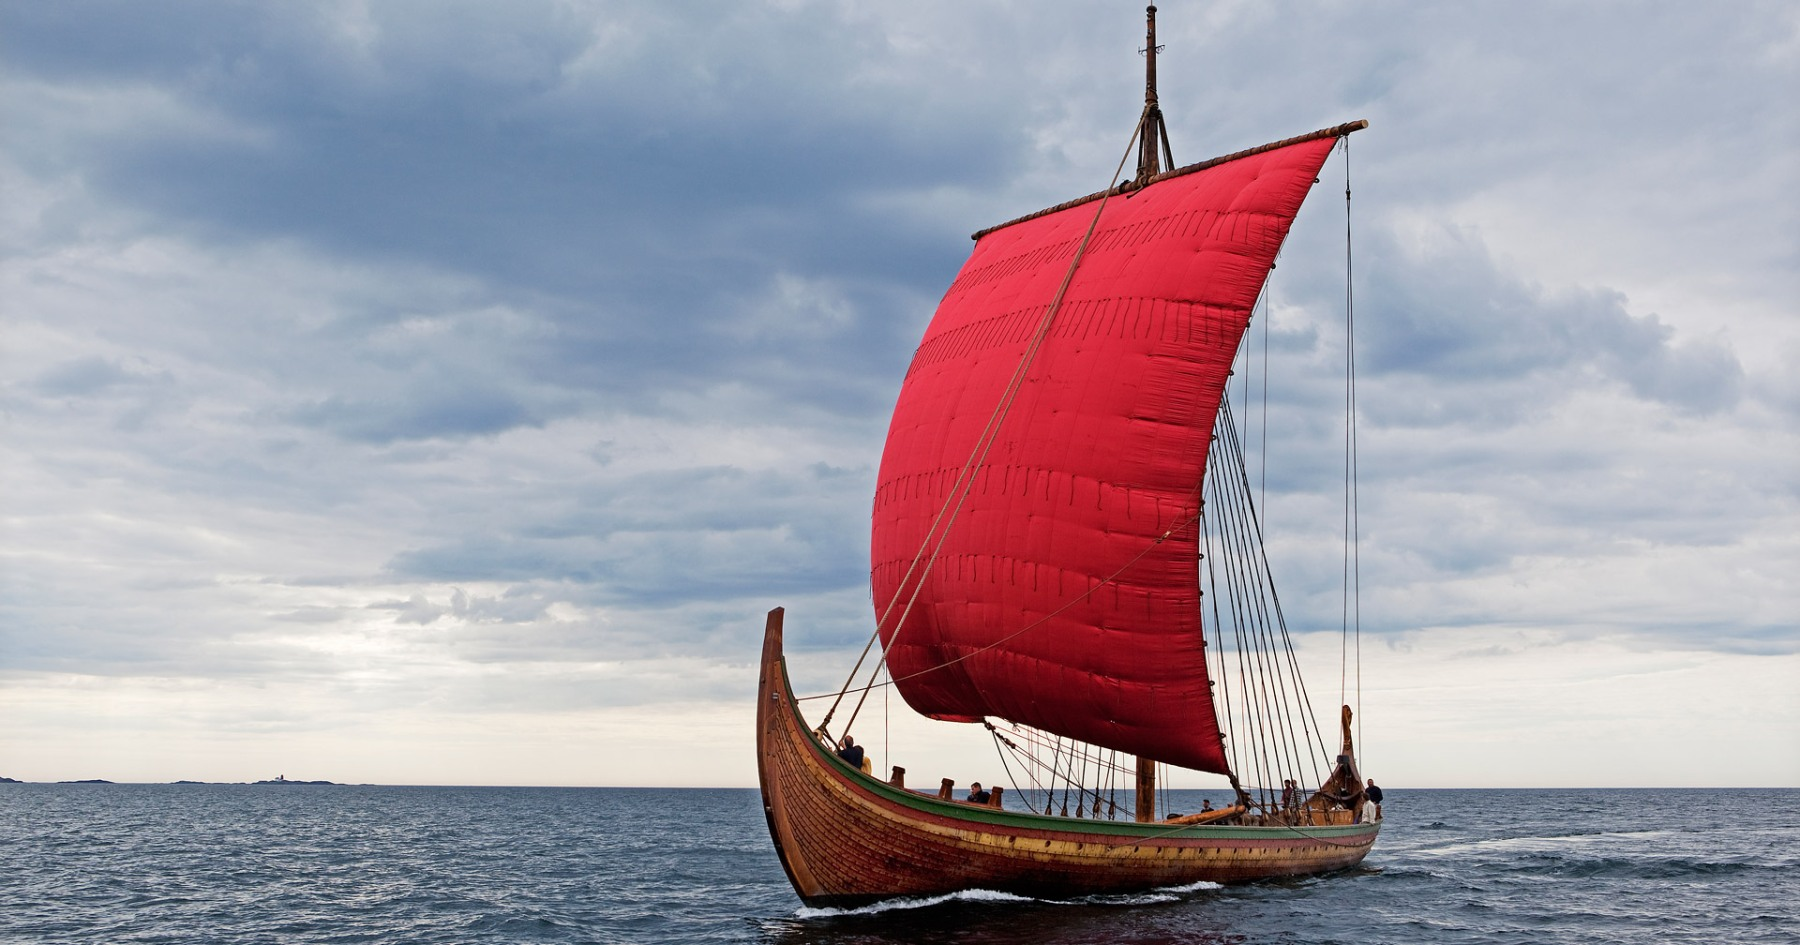 The World's Largest Viking Ship Is Coming